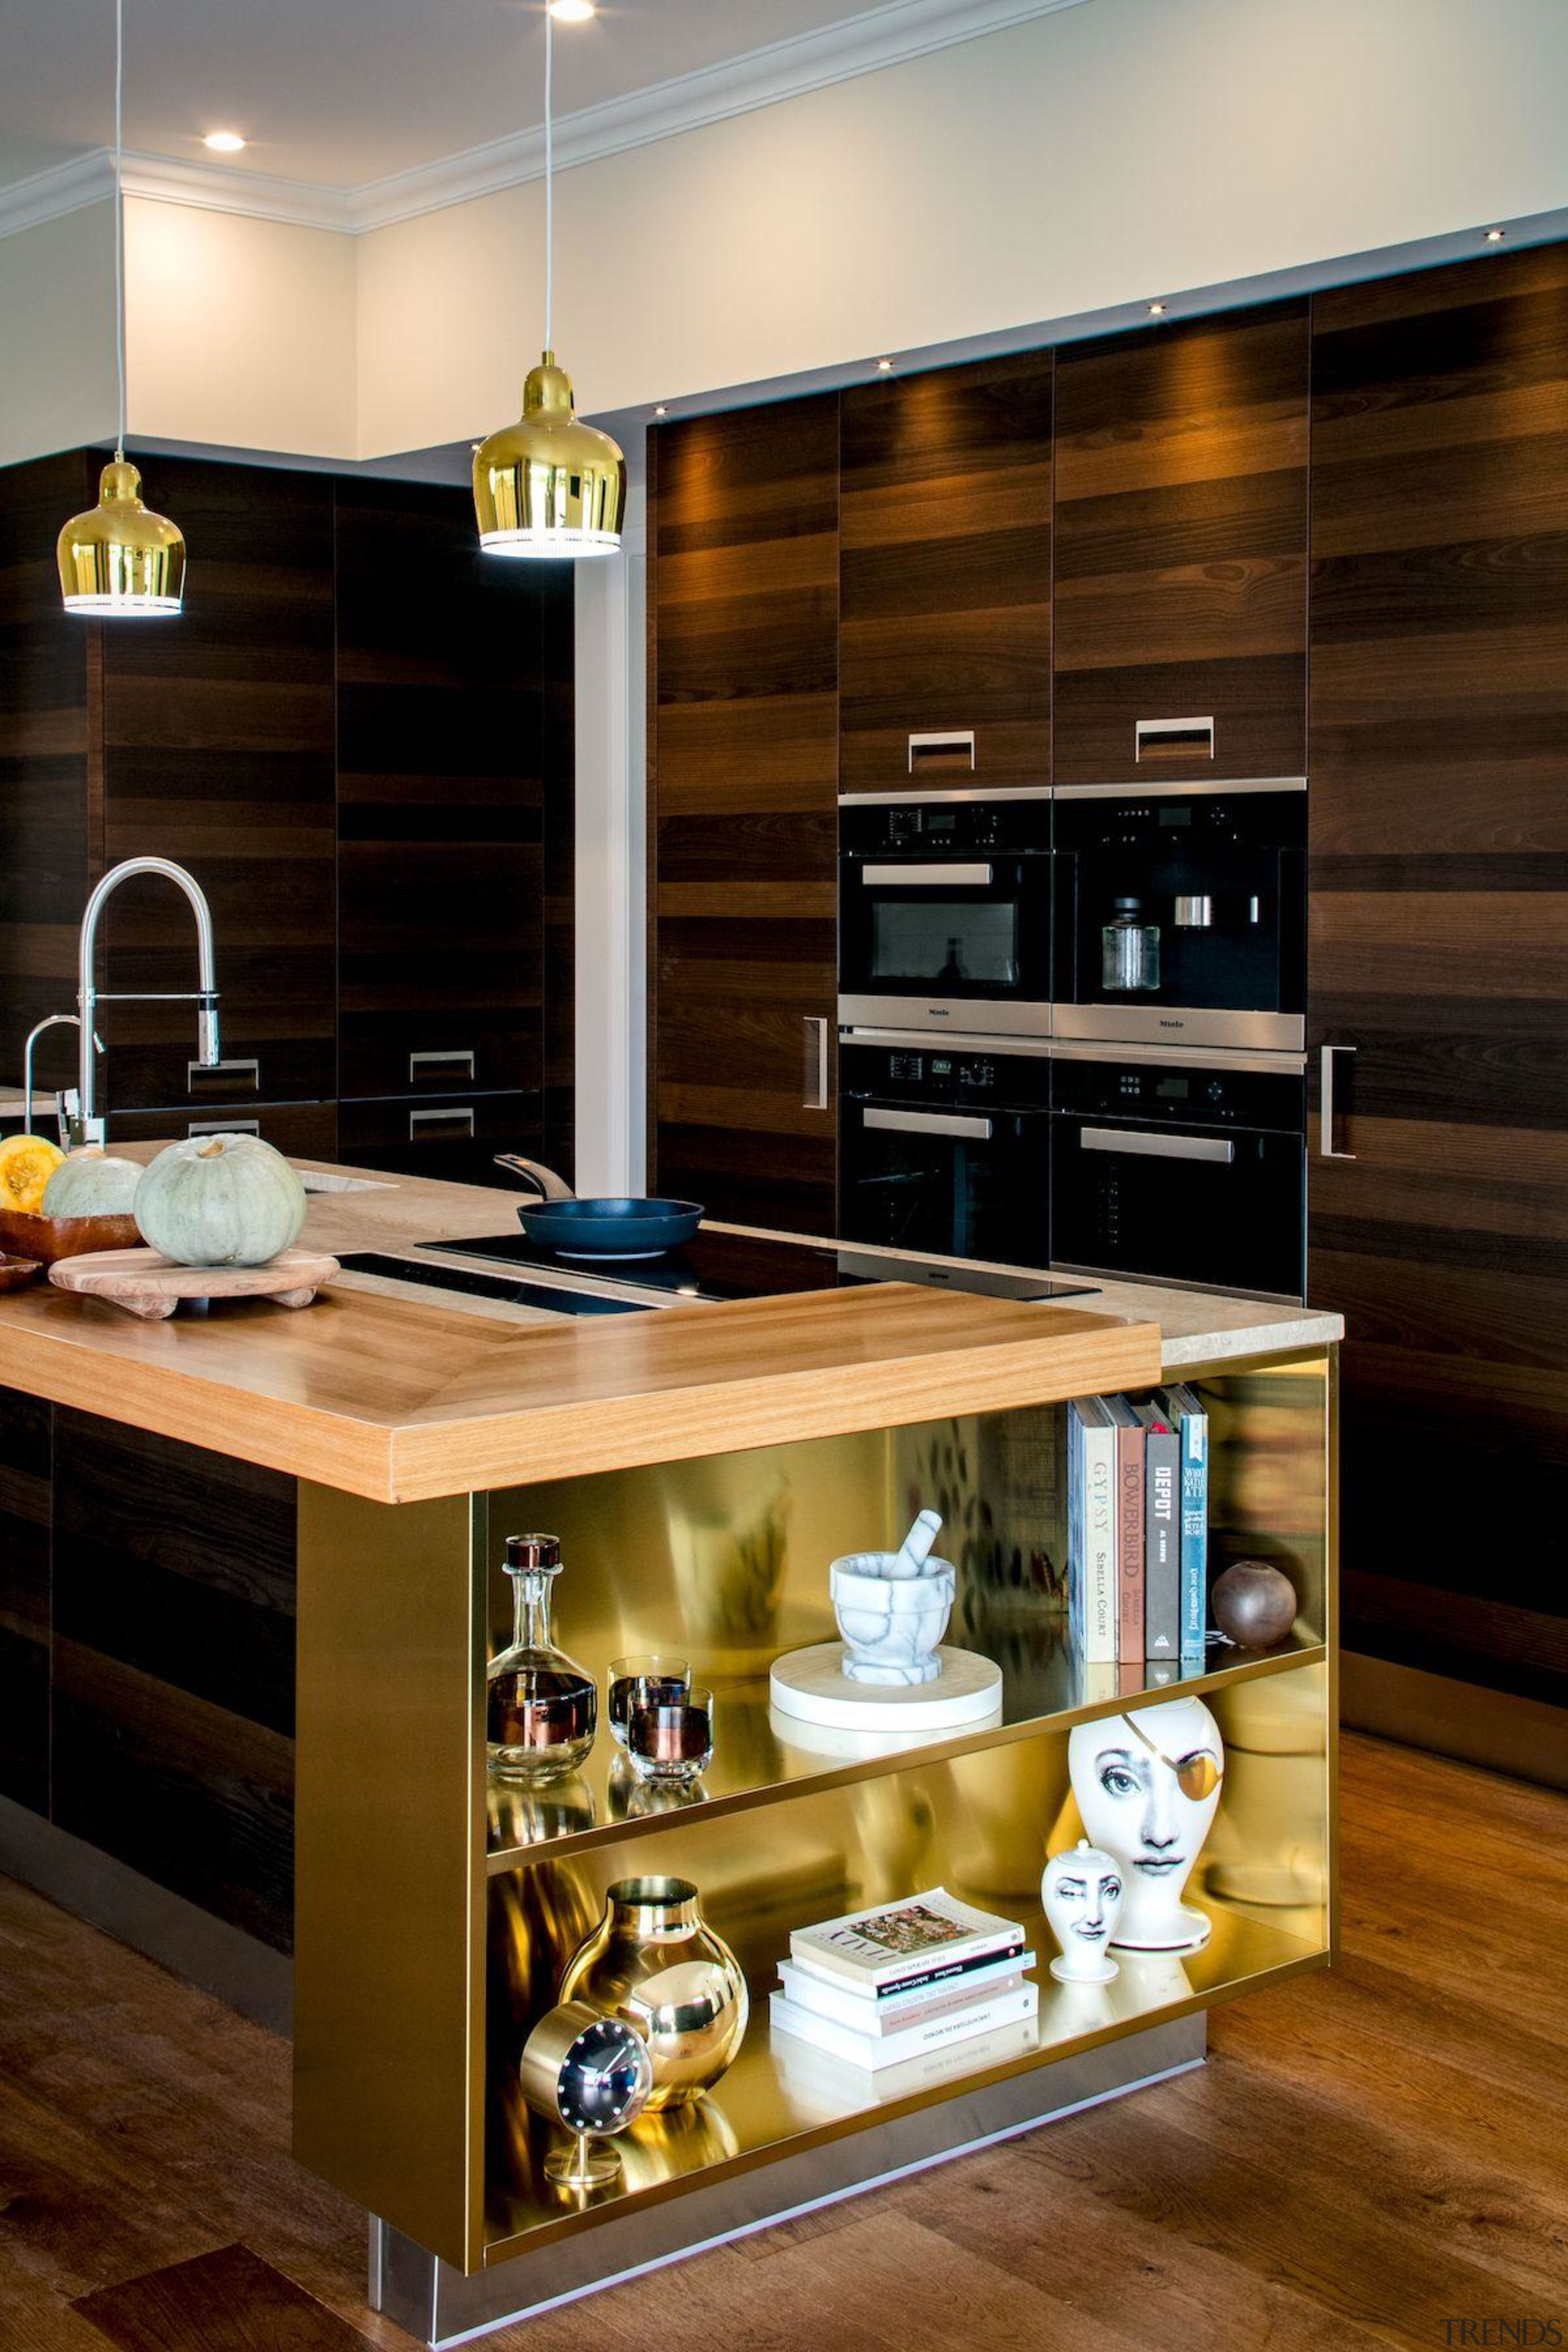 This first impression upon seeing the kitchen sets cabinetry, countertop, cuisine classique, interior design, kitchen, brown